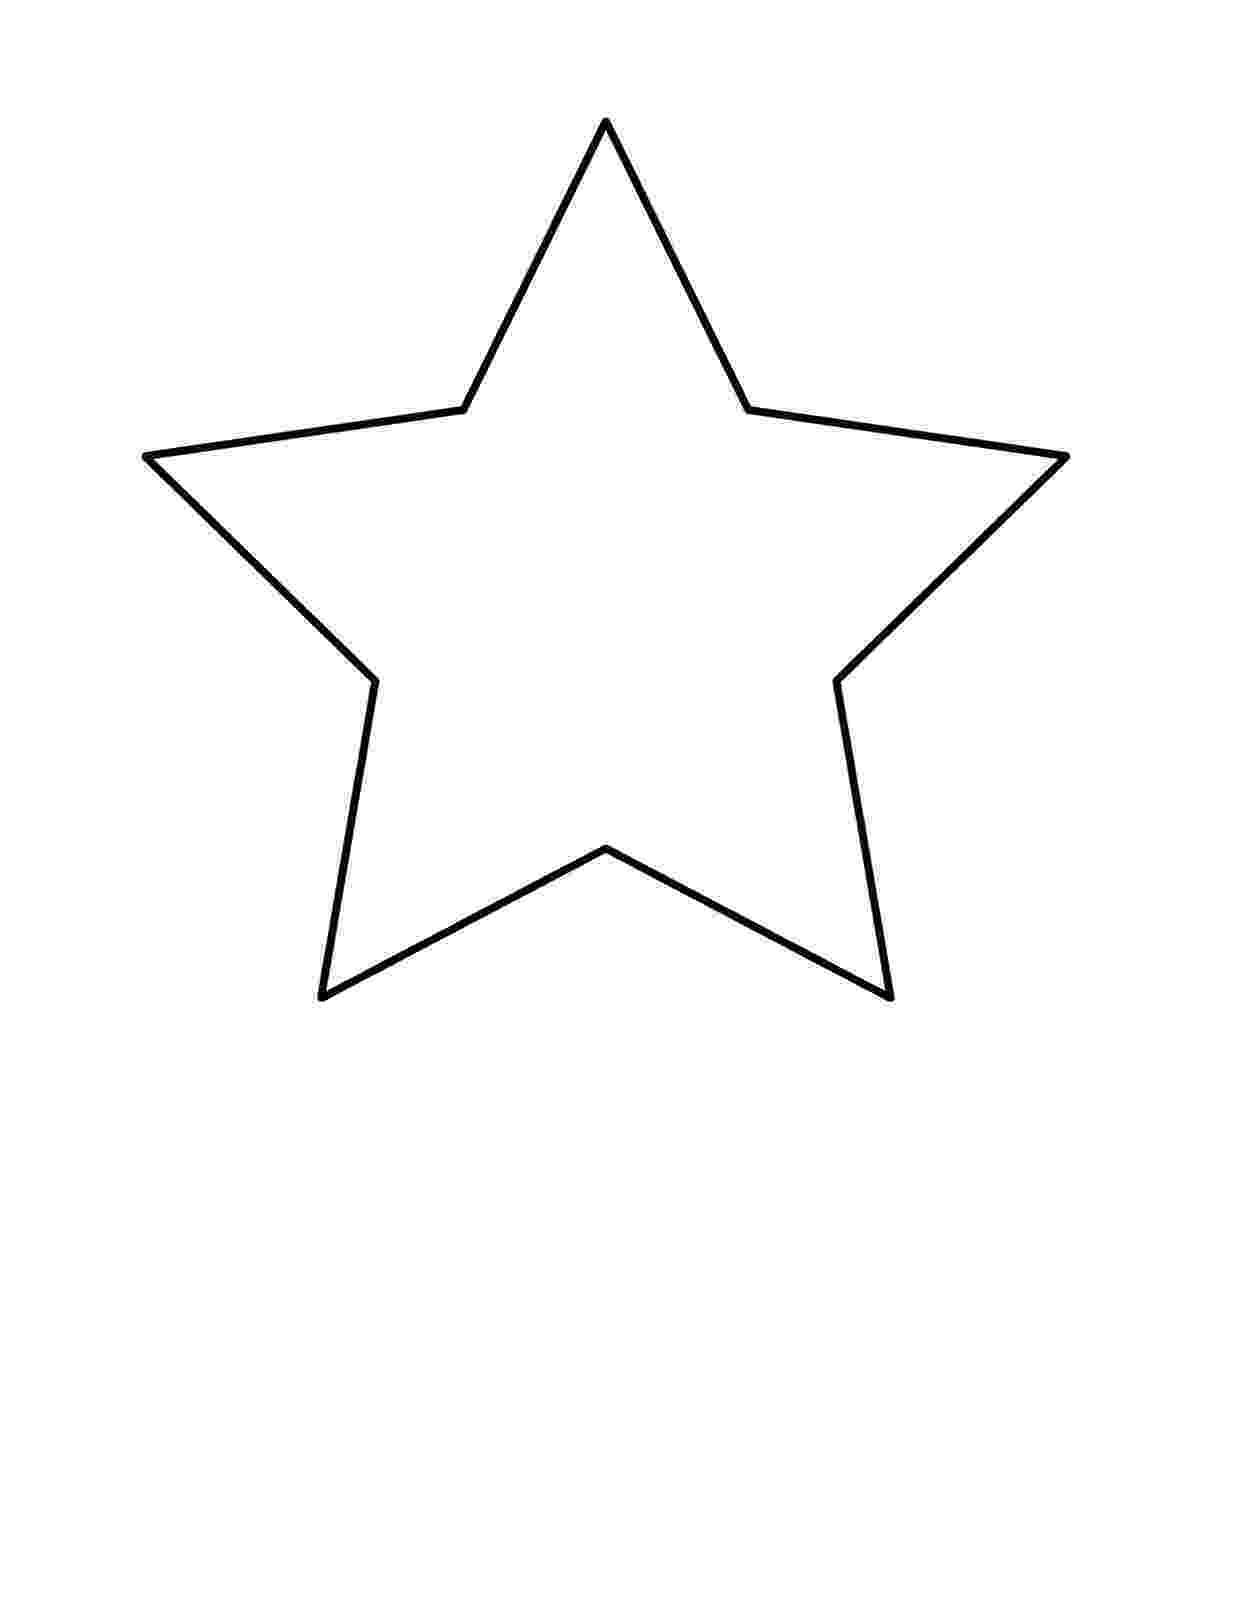 picture of a star to color free printable star coloring pages for kids cool2bkids a color picture star of to